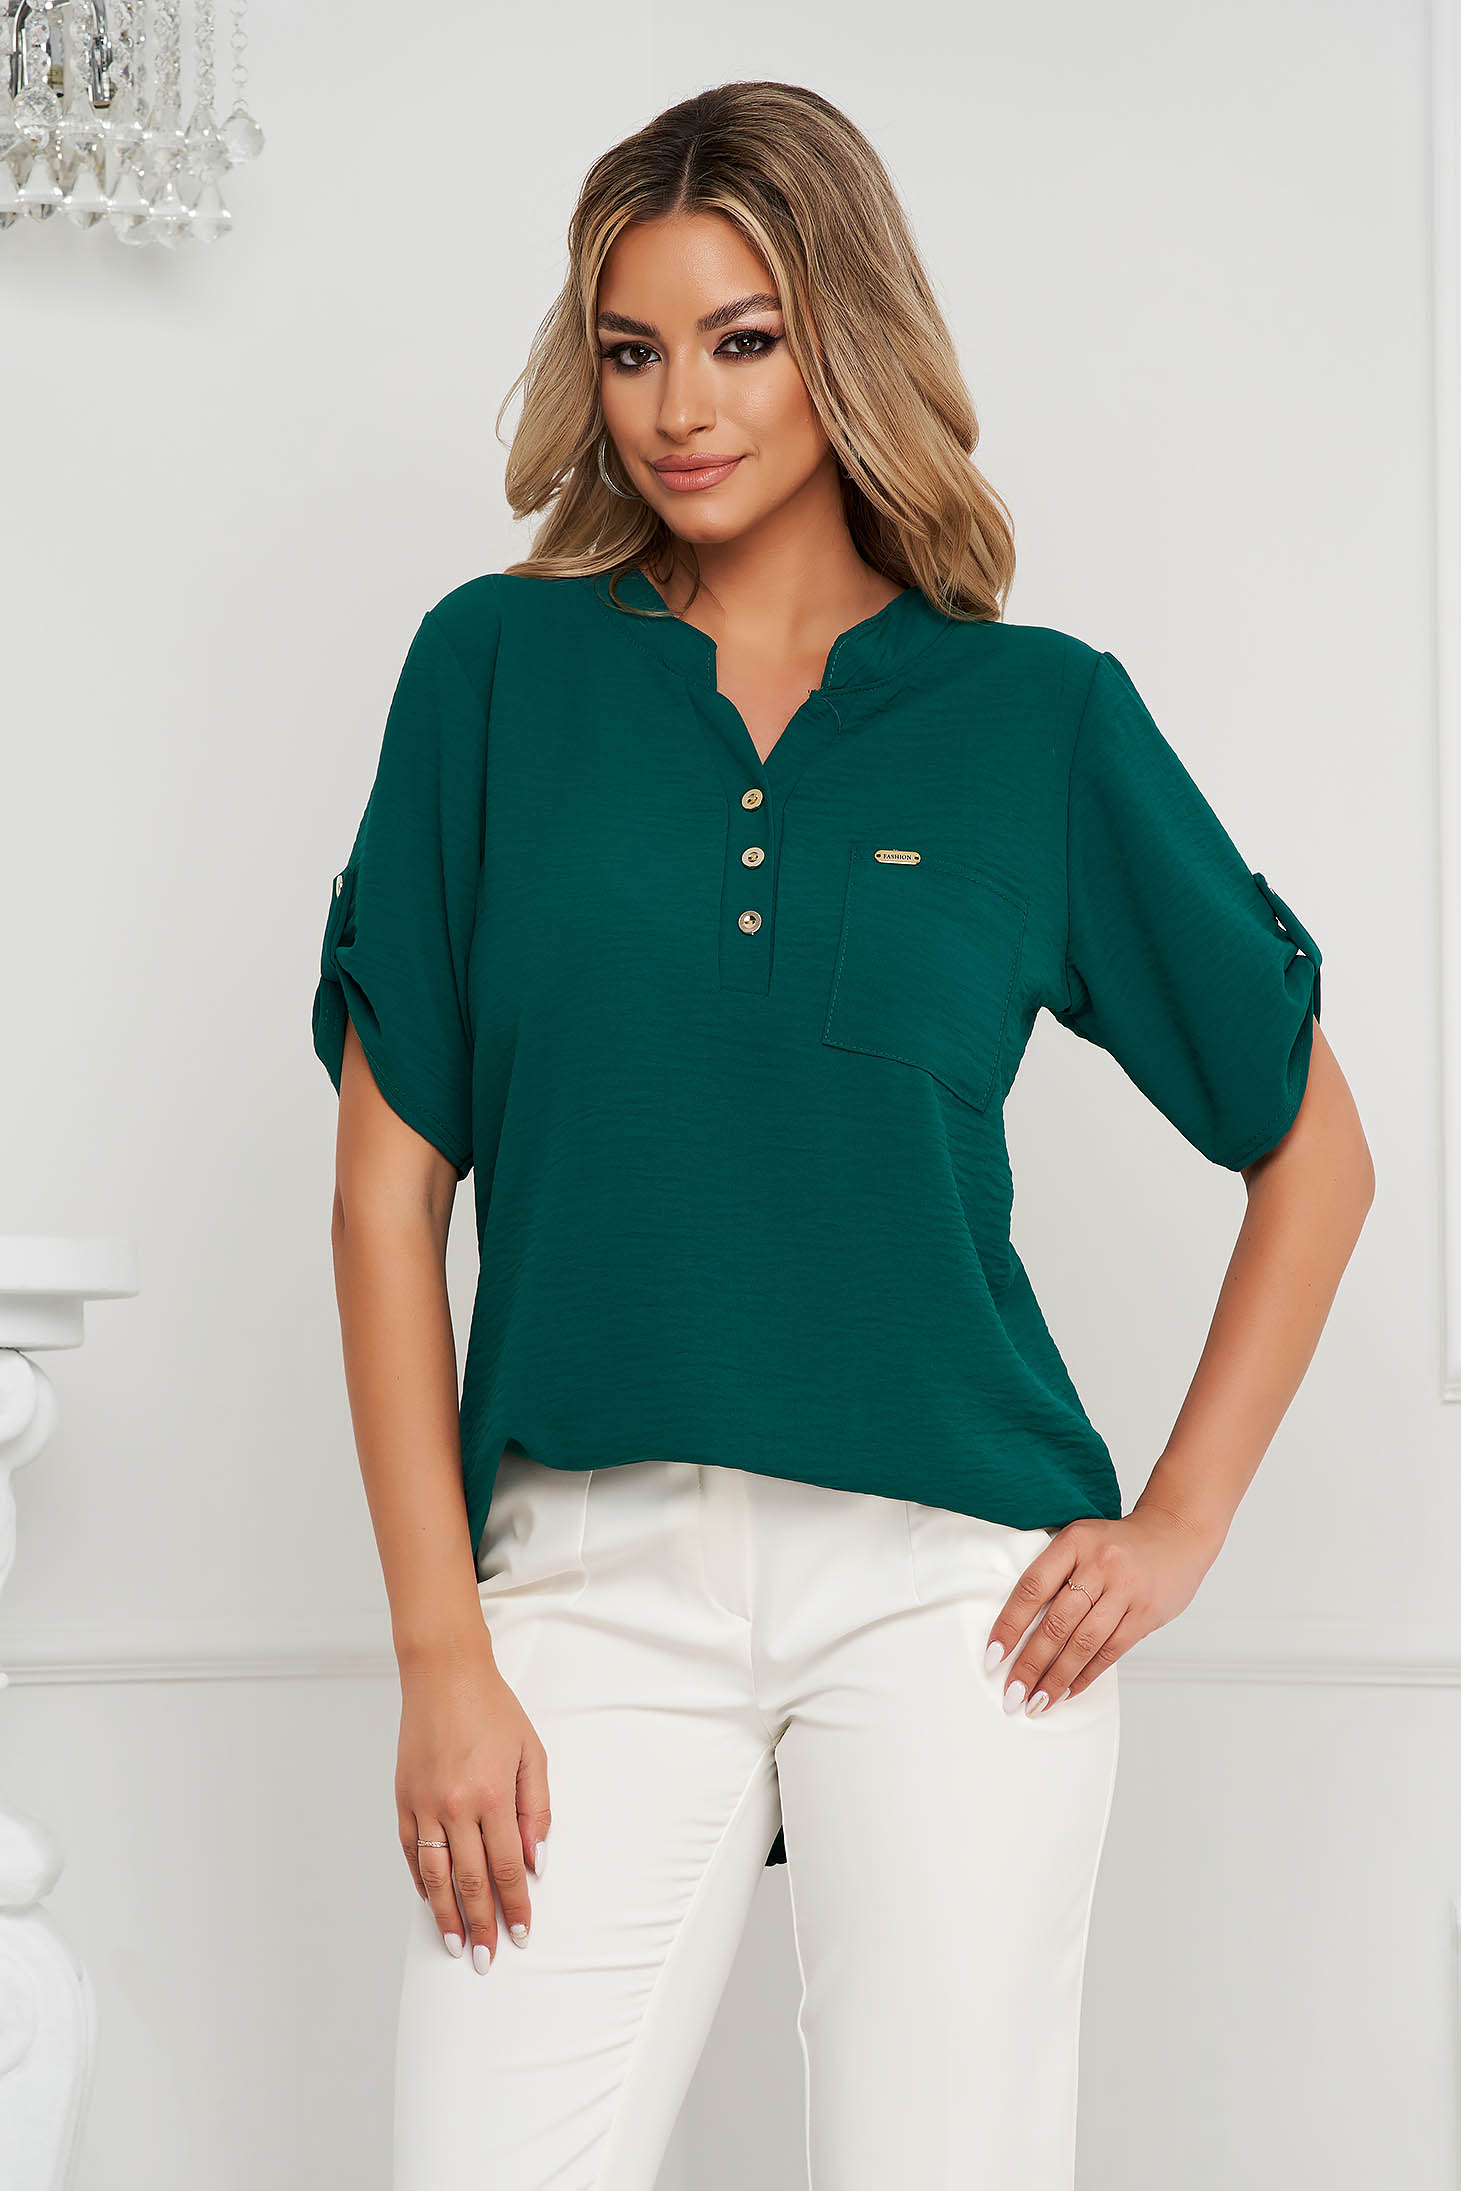 Darkgreen women`s blouse loose fit wrinkled material a front pocket